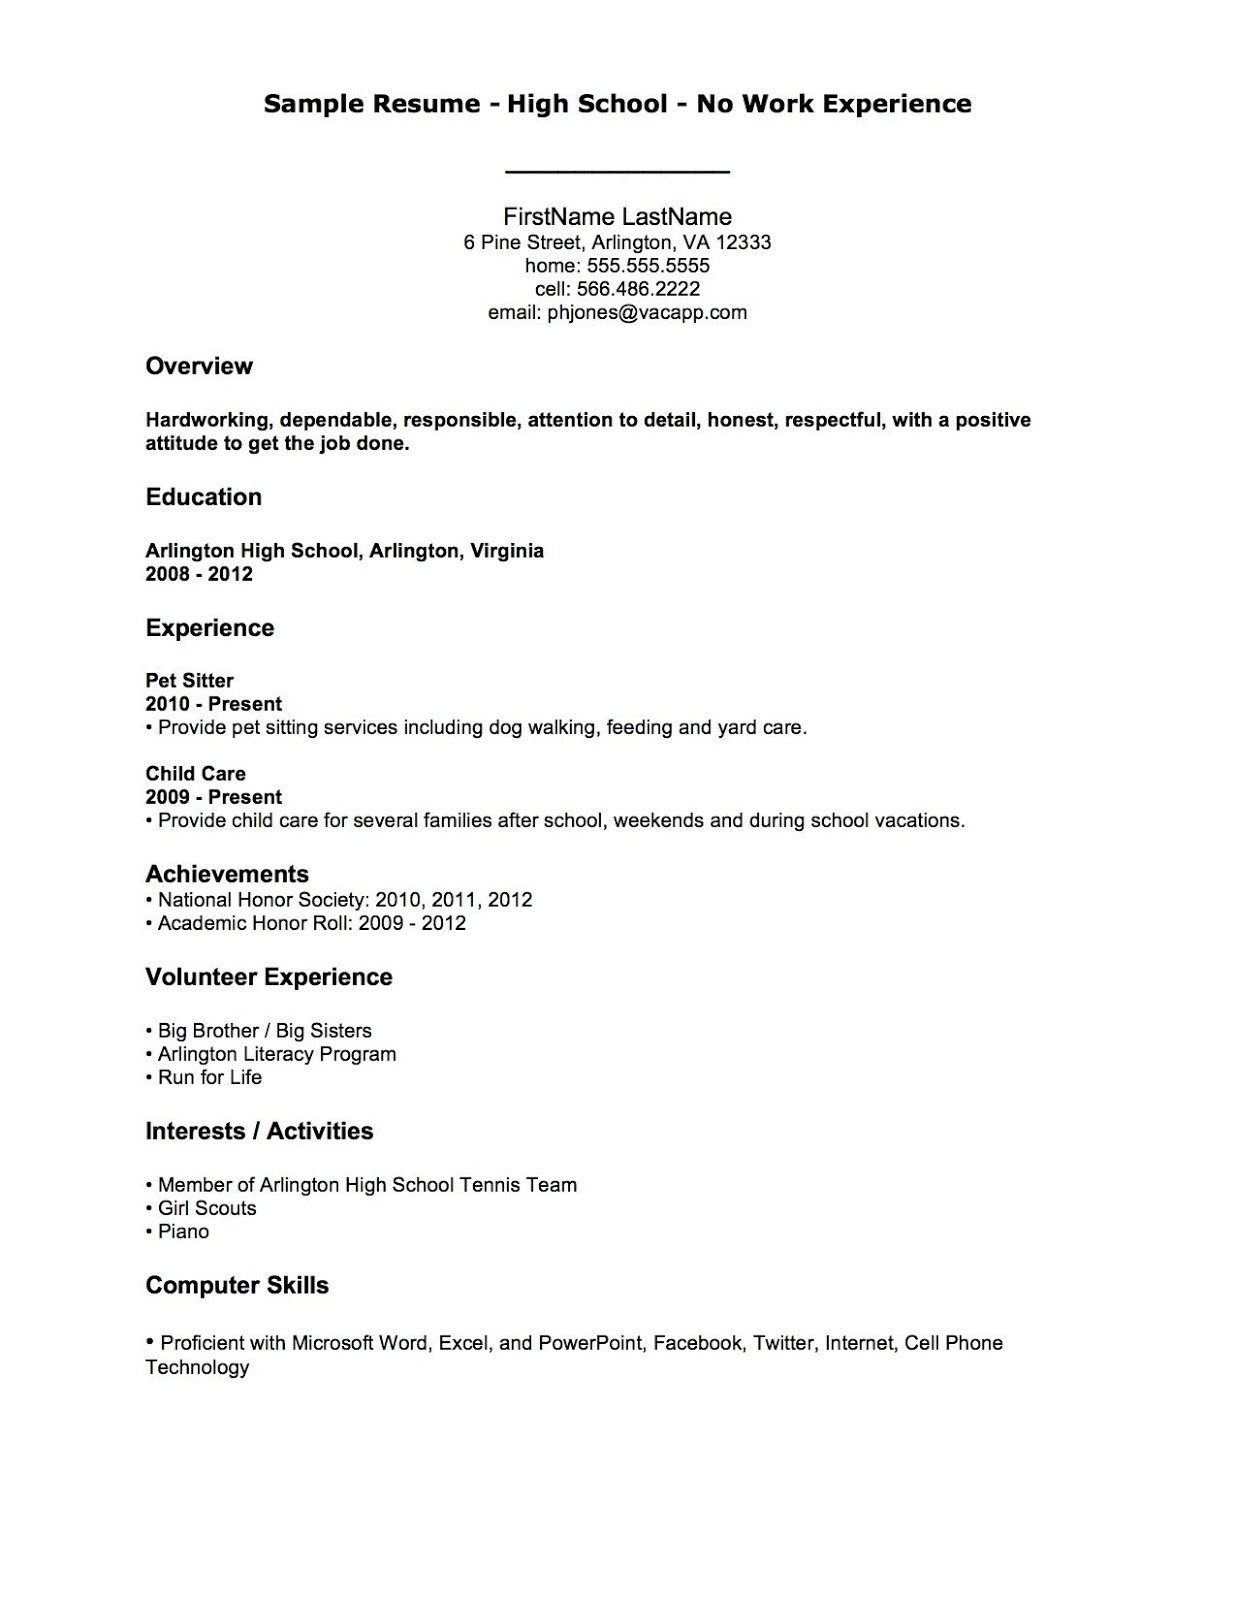 first time job resume examples  resume format download pdf also first time job resume examples first time job resume examples good jobresume samples examples resumes